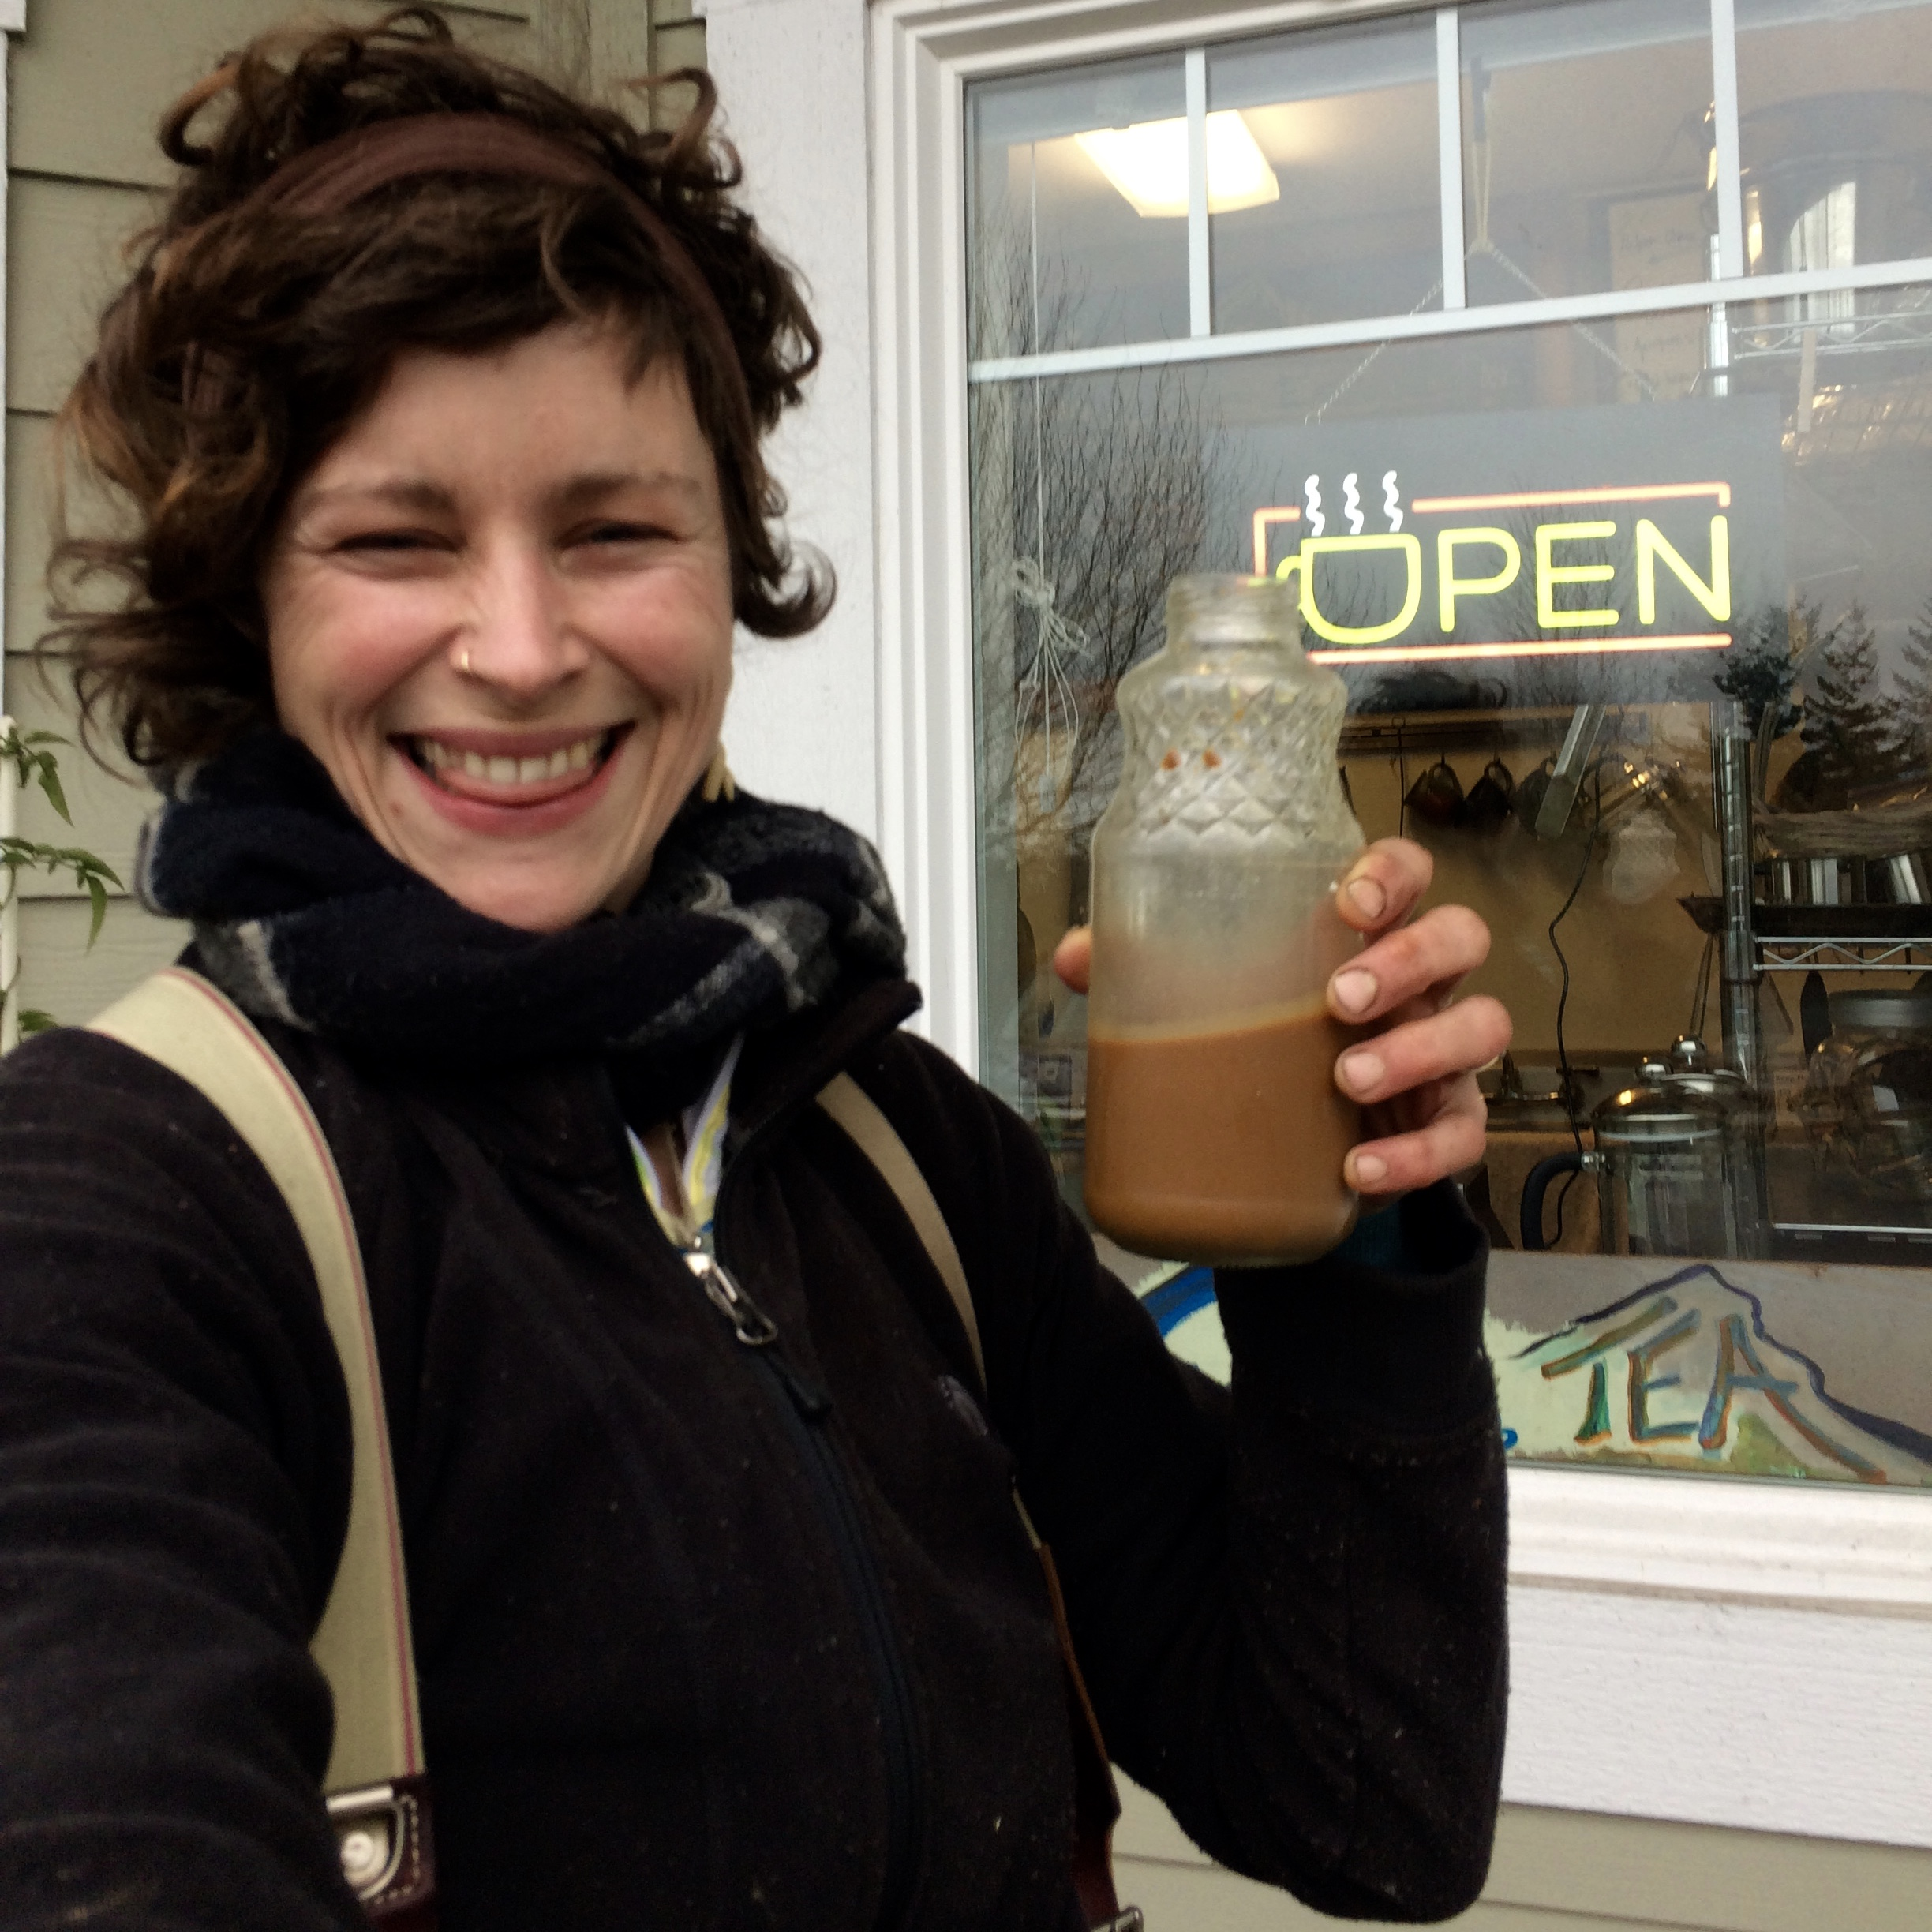 Shaelee the brew master enjoying the glorious Chaga-coldbrew before landscaping!